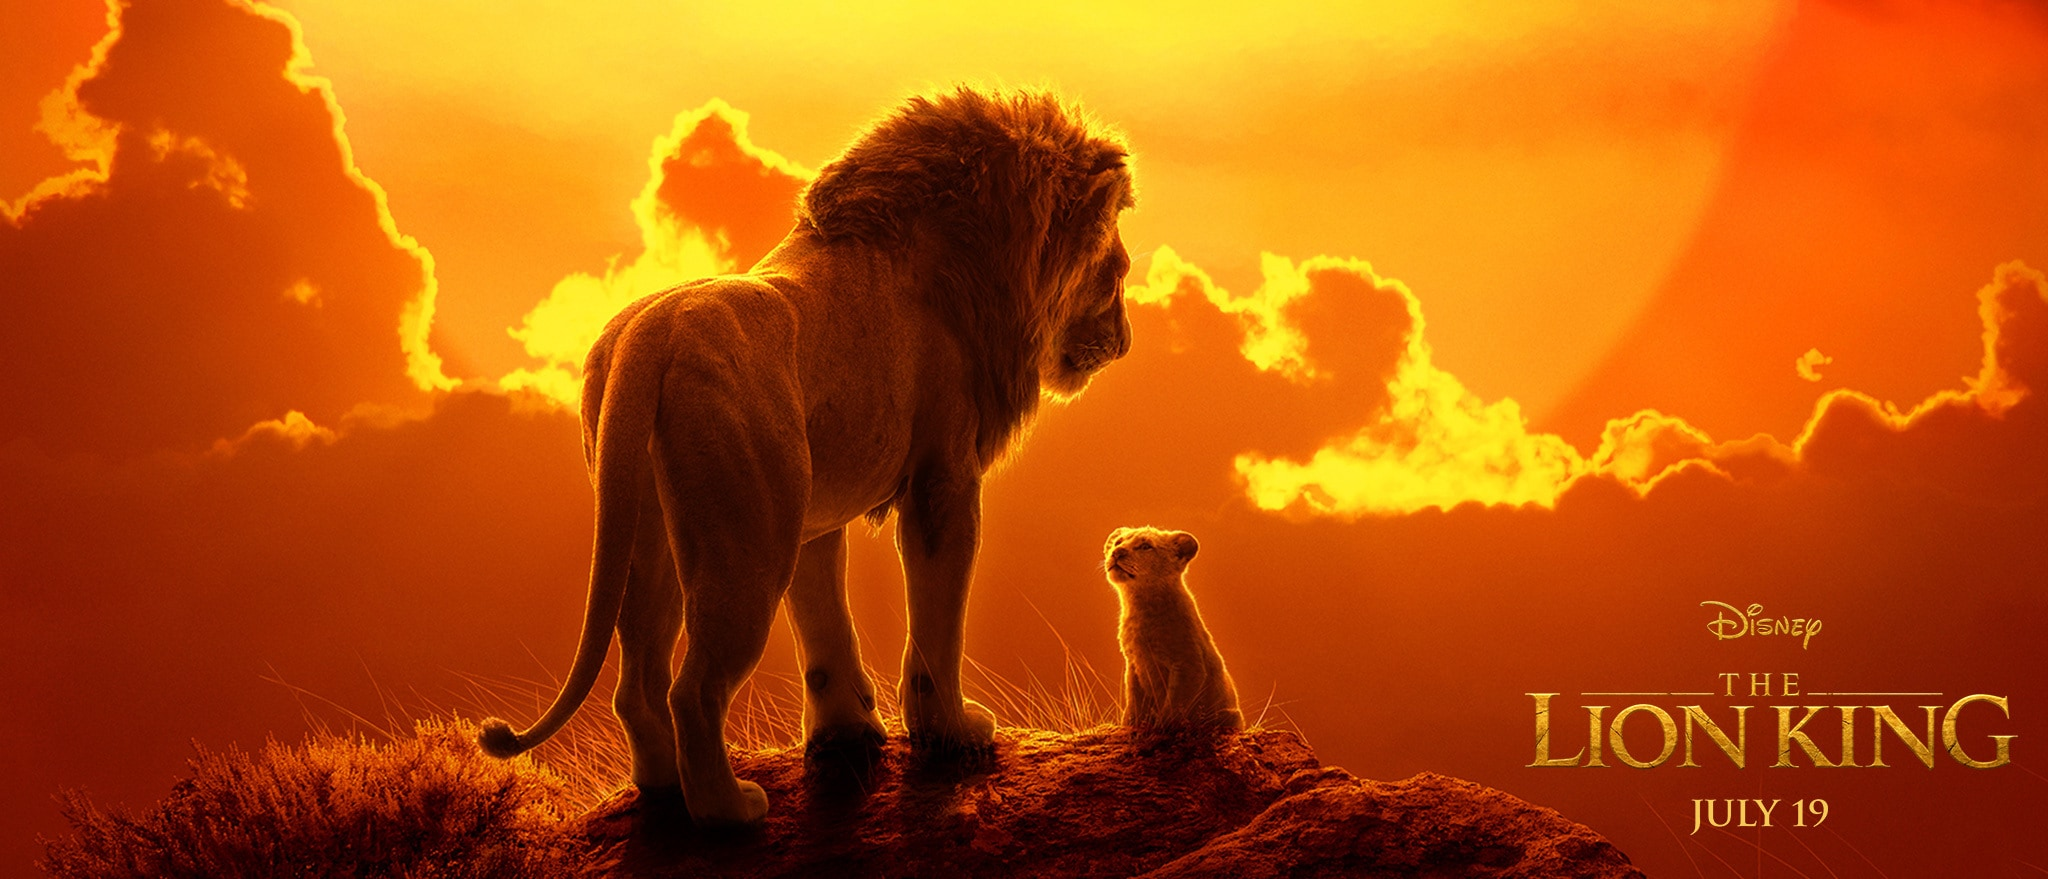 disney the lion king movie 2019 images of the year